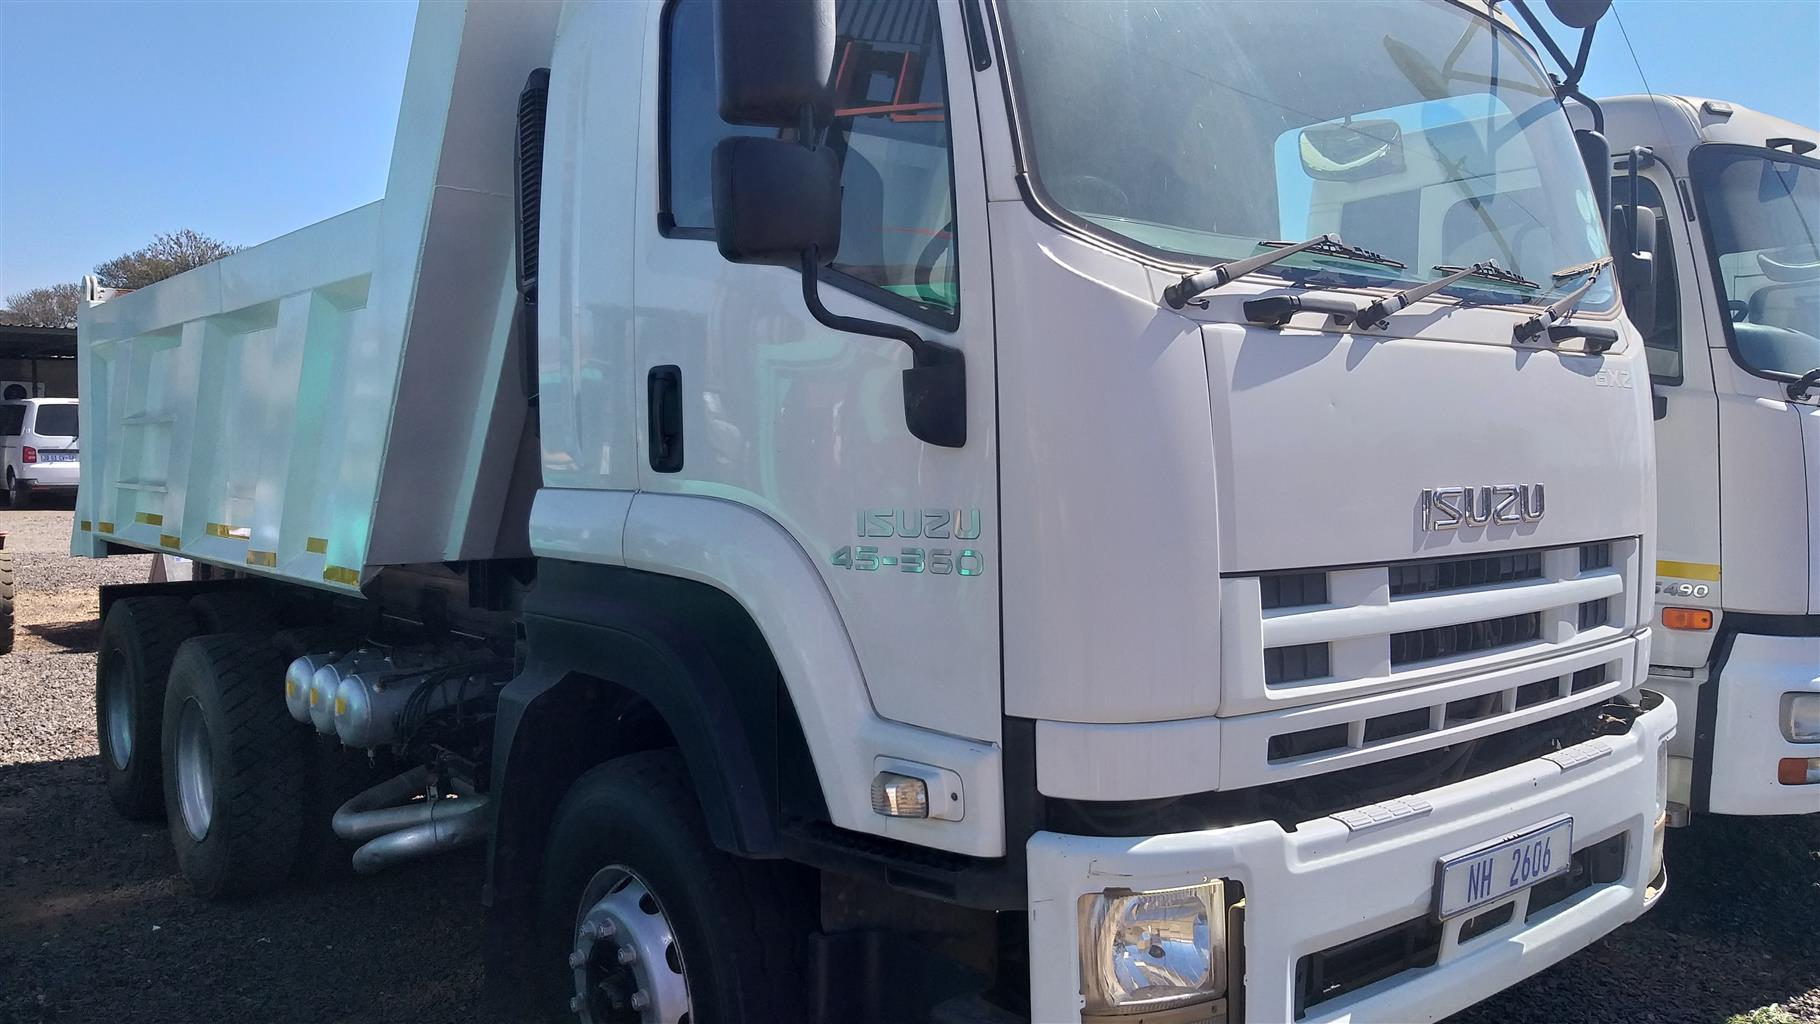 10 Cube Tipper Isuzu GXZ 45-360 in very good condition, for sale in Pretoria